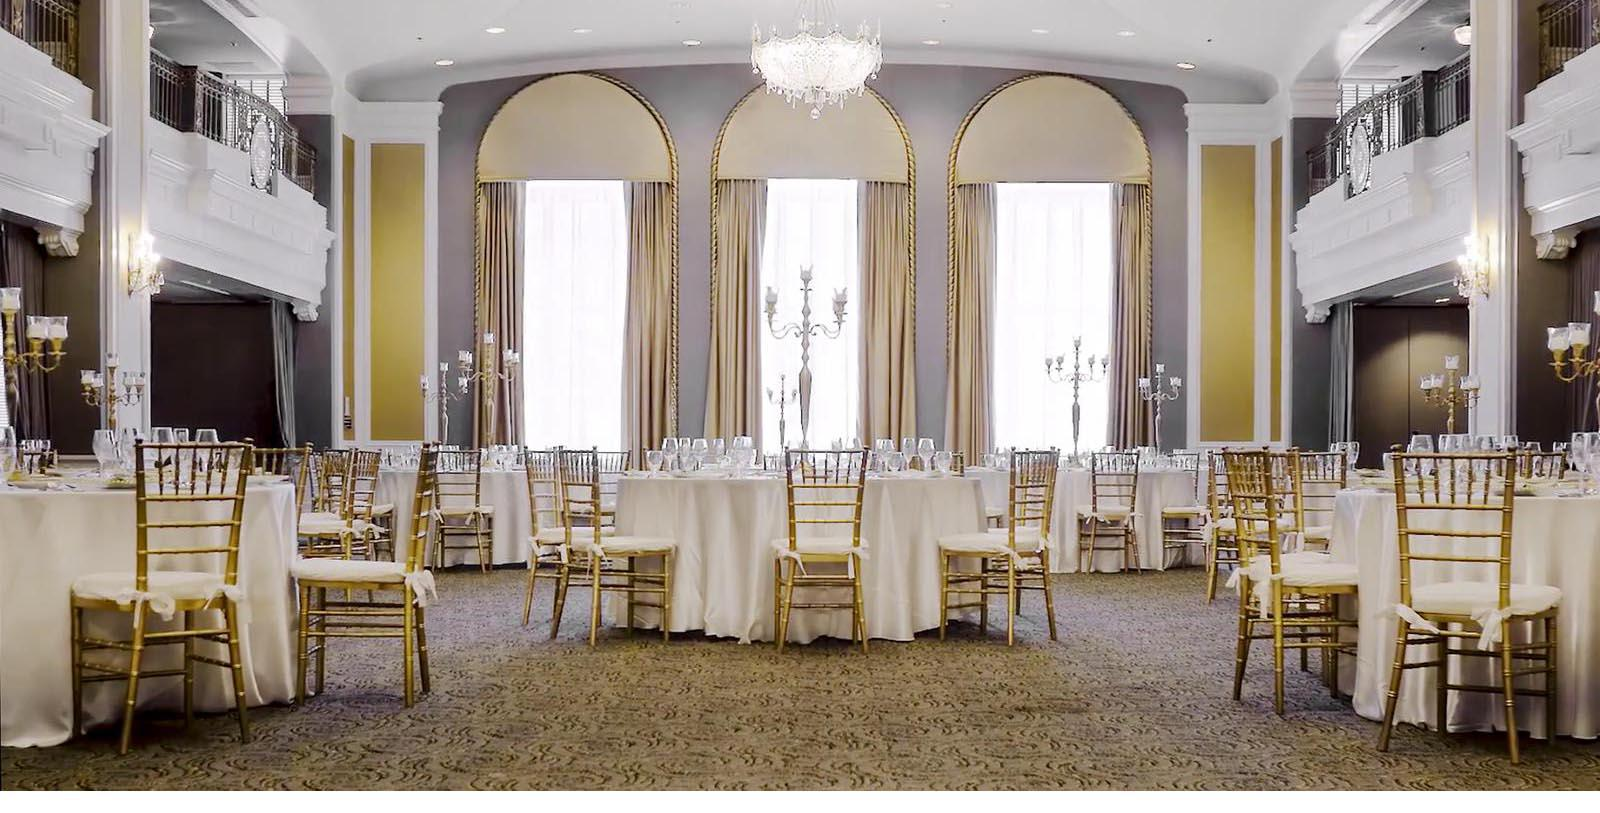 Image of Ballroom, Lord Baltimore Hotel in Baltimore, Maryland, 1928, Member of Historic Hotels of America, Experience